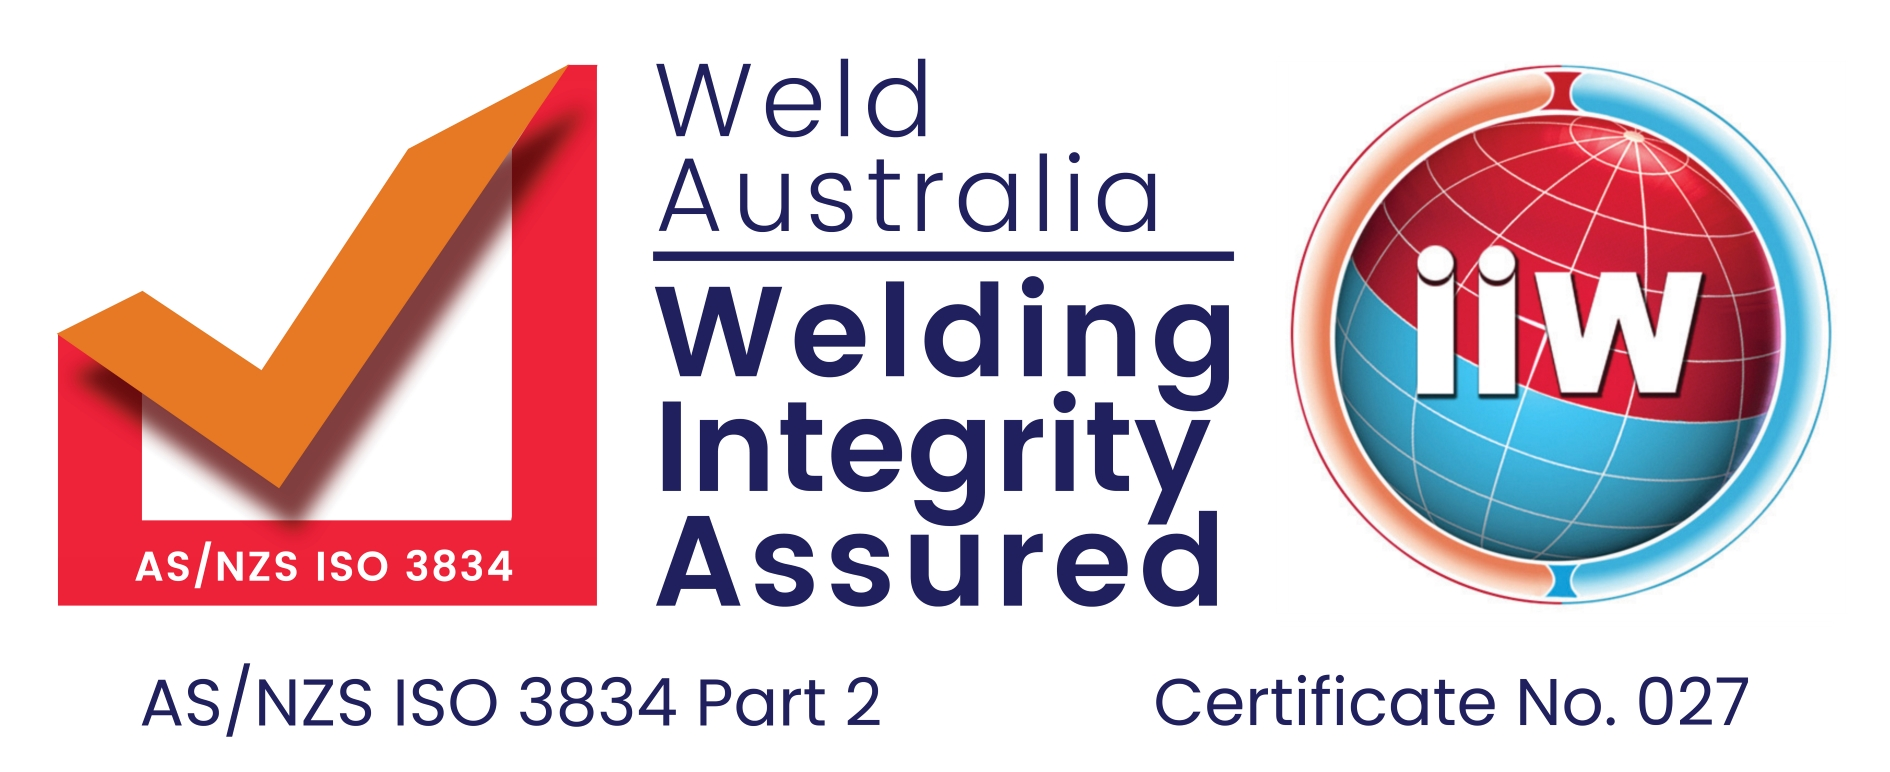 AS/NZS ISO 3834 Part 2 - Comprehensive quality requirements for fusion welding of metallic materials both in workshop and at field installation sites.